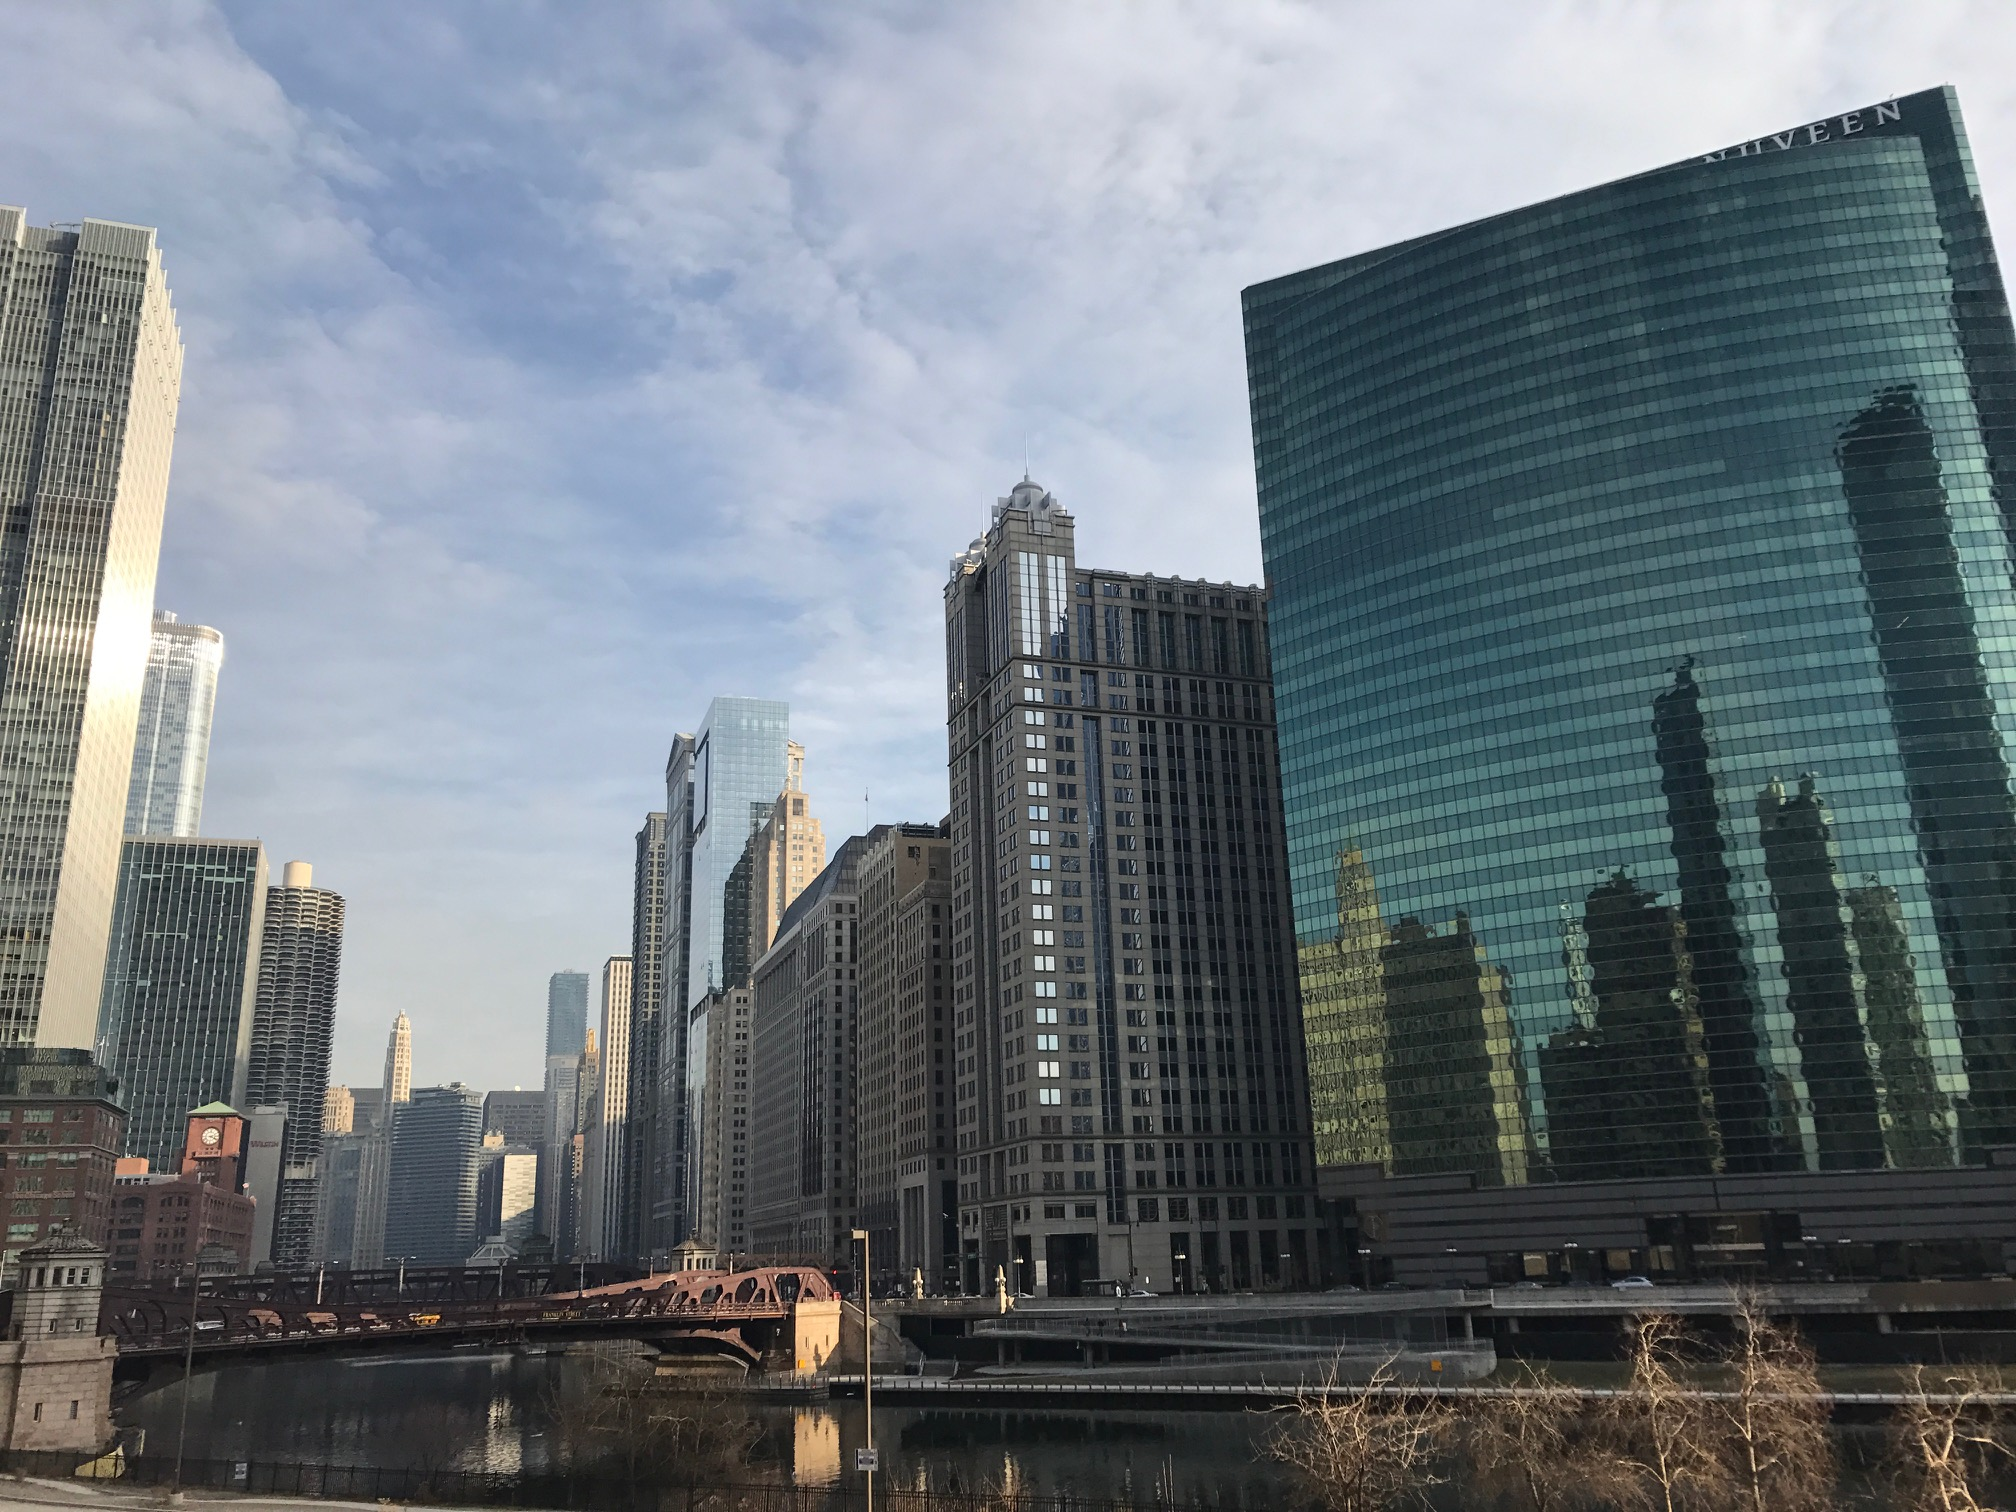 chicagobuildings.jpg